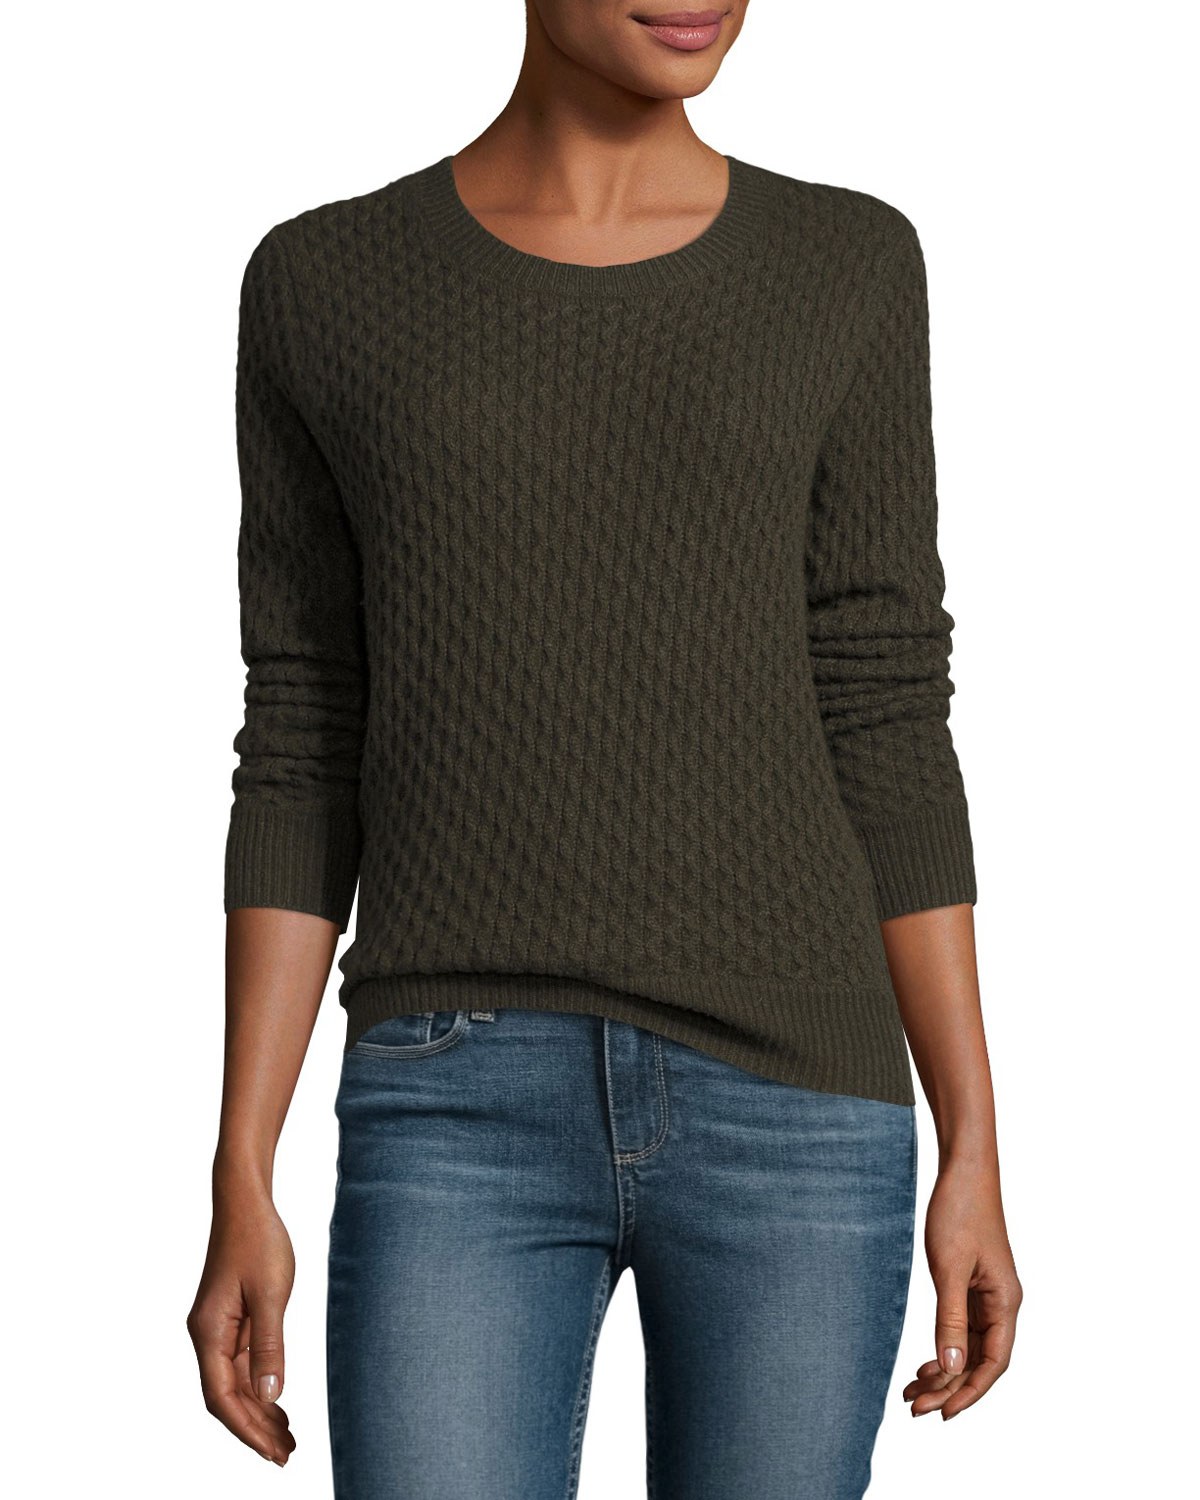 Estelle Cable-Knit Sweater, Army